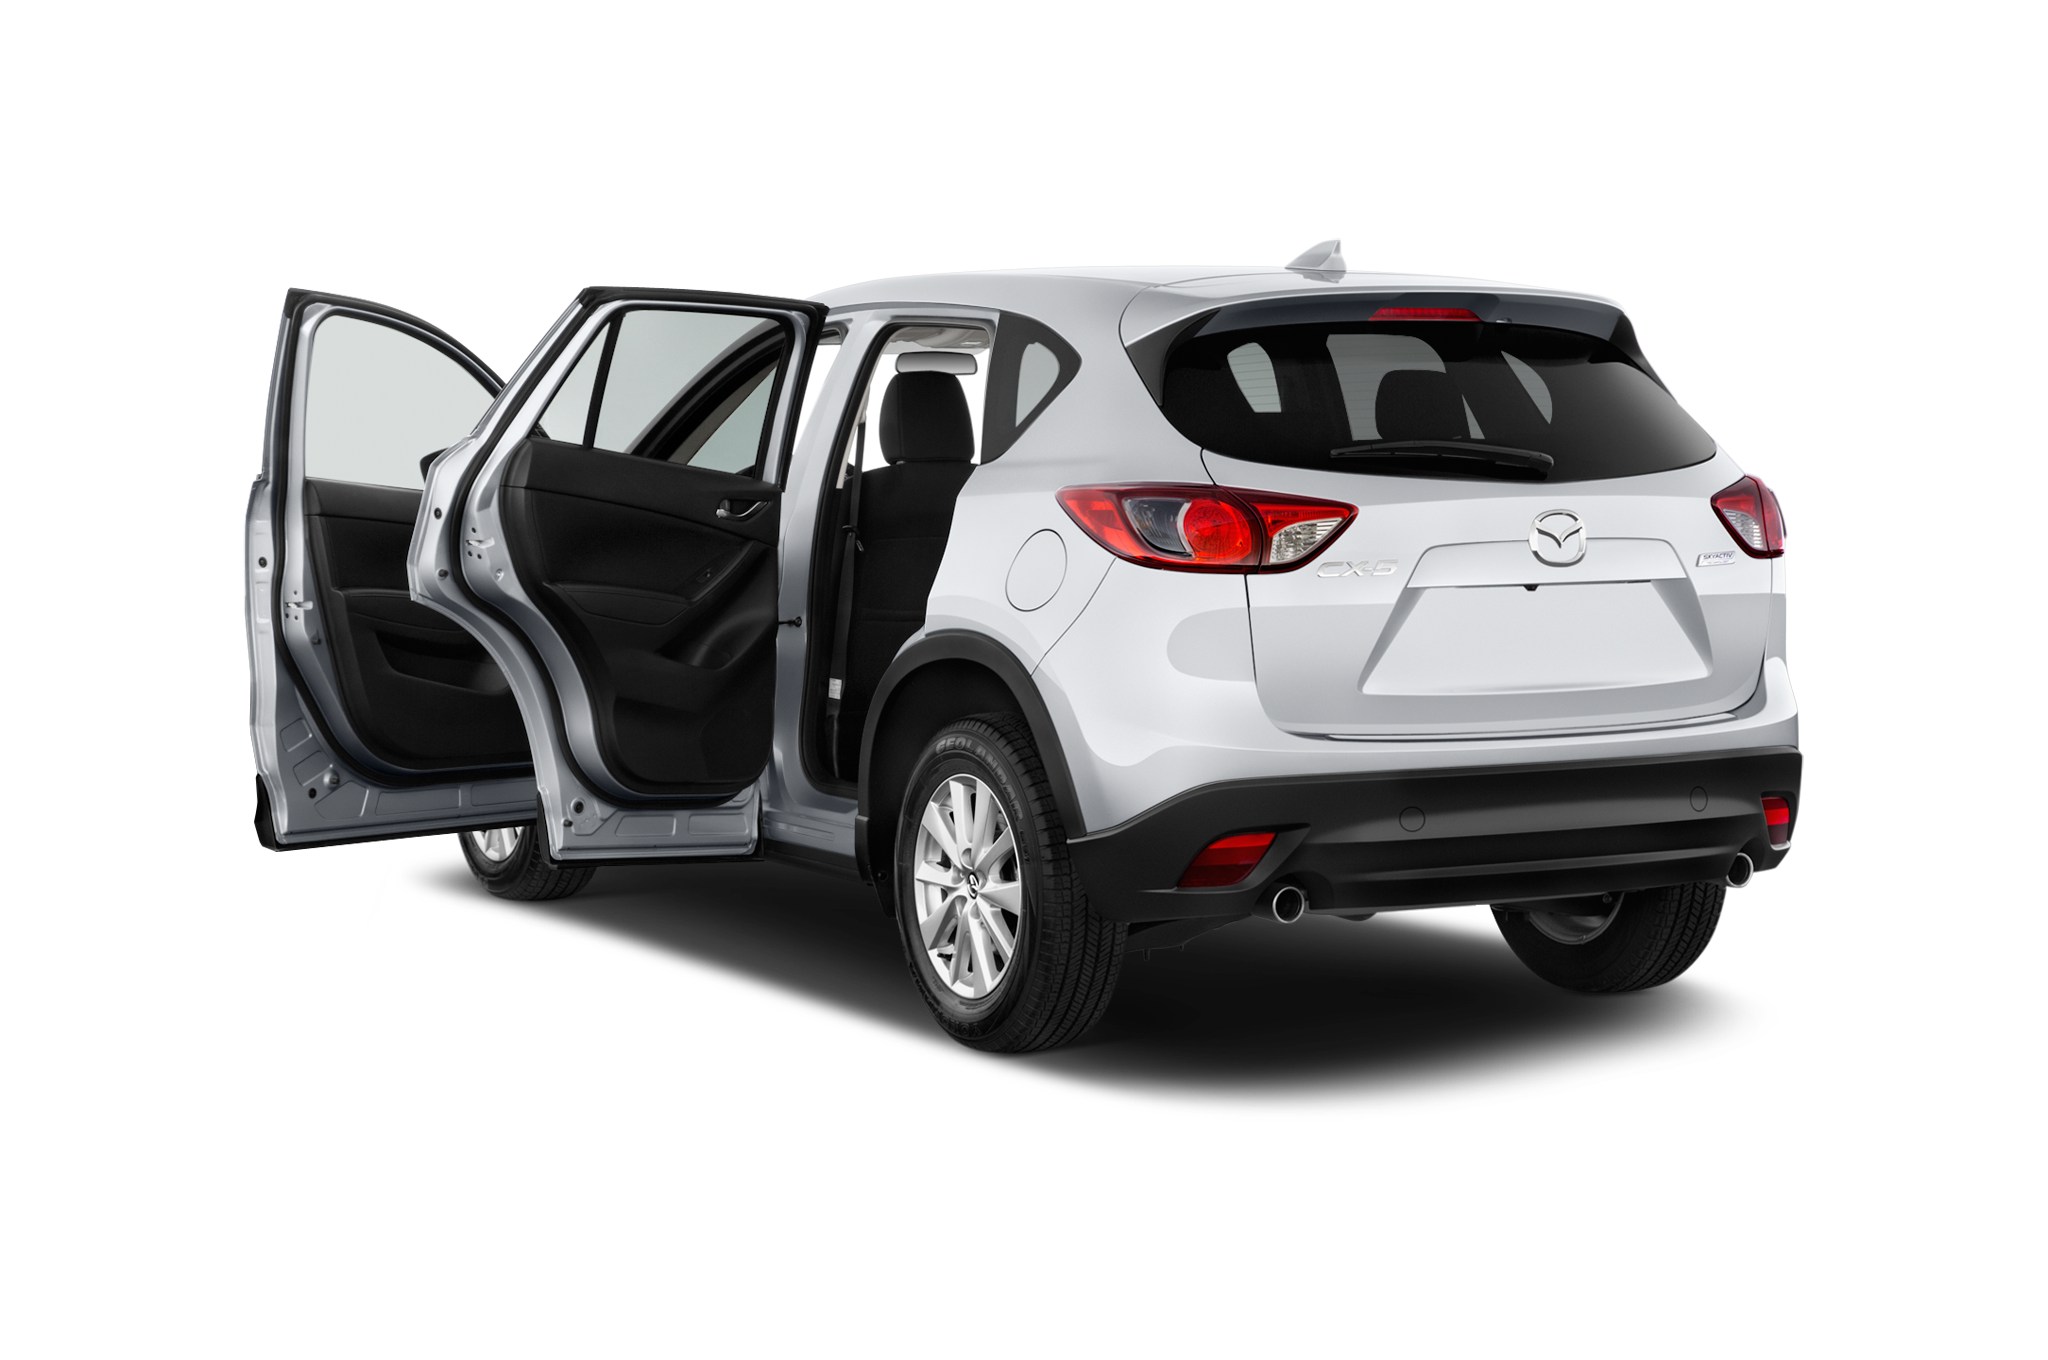 mazda cx 4 crossover revealed in beijing exclusive to china automobile magazine. Black Bedroom Furniture Sets. Home Design Ideas